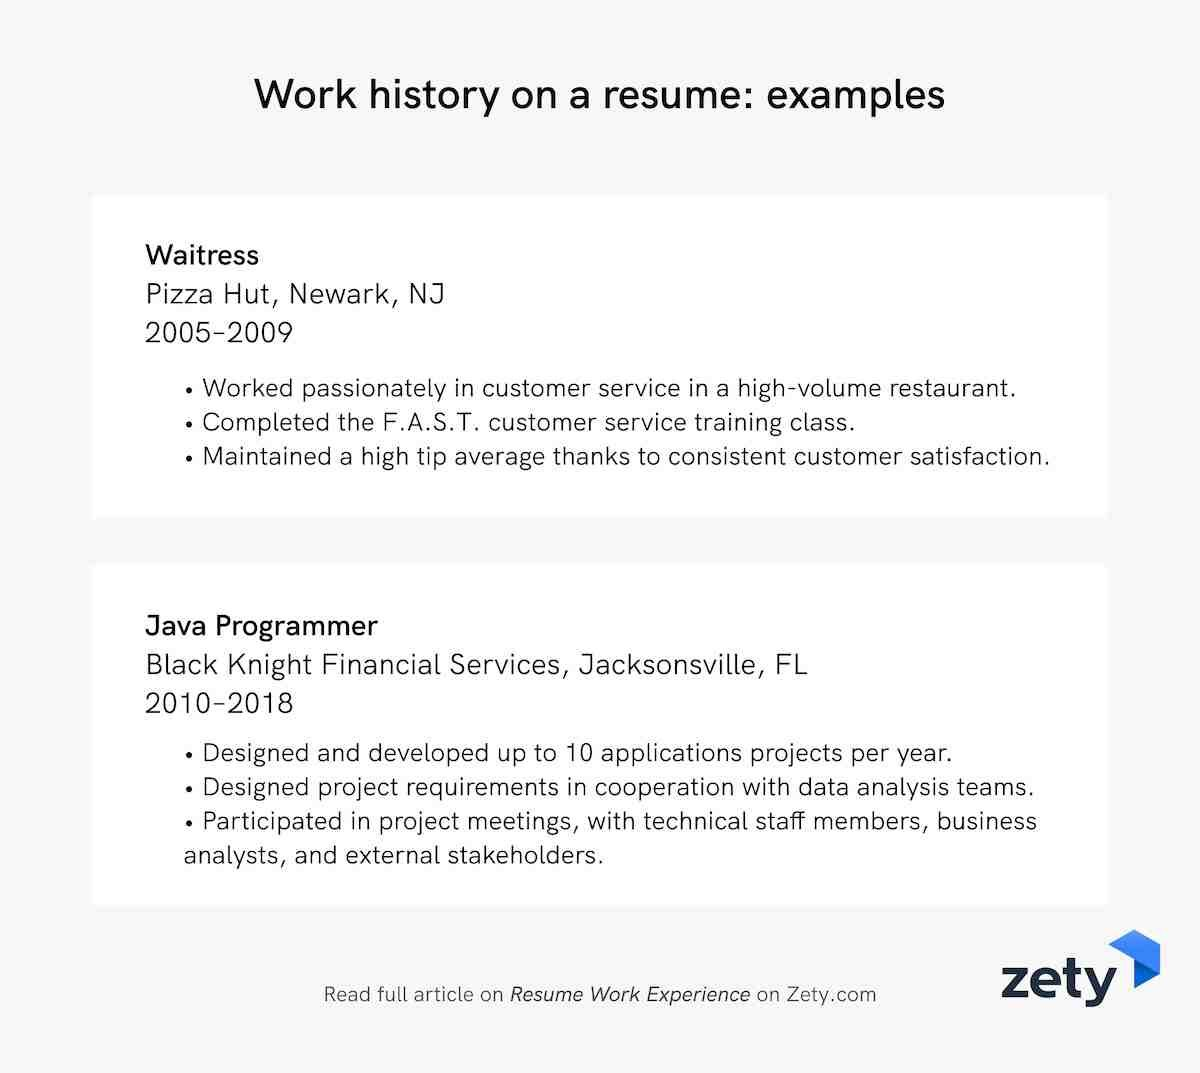 resume work experience history example job descriptions examples on side projects musical Resume Resume Work Experience Examples